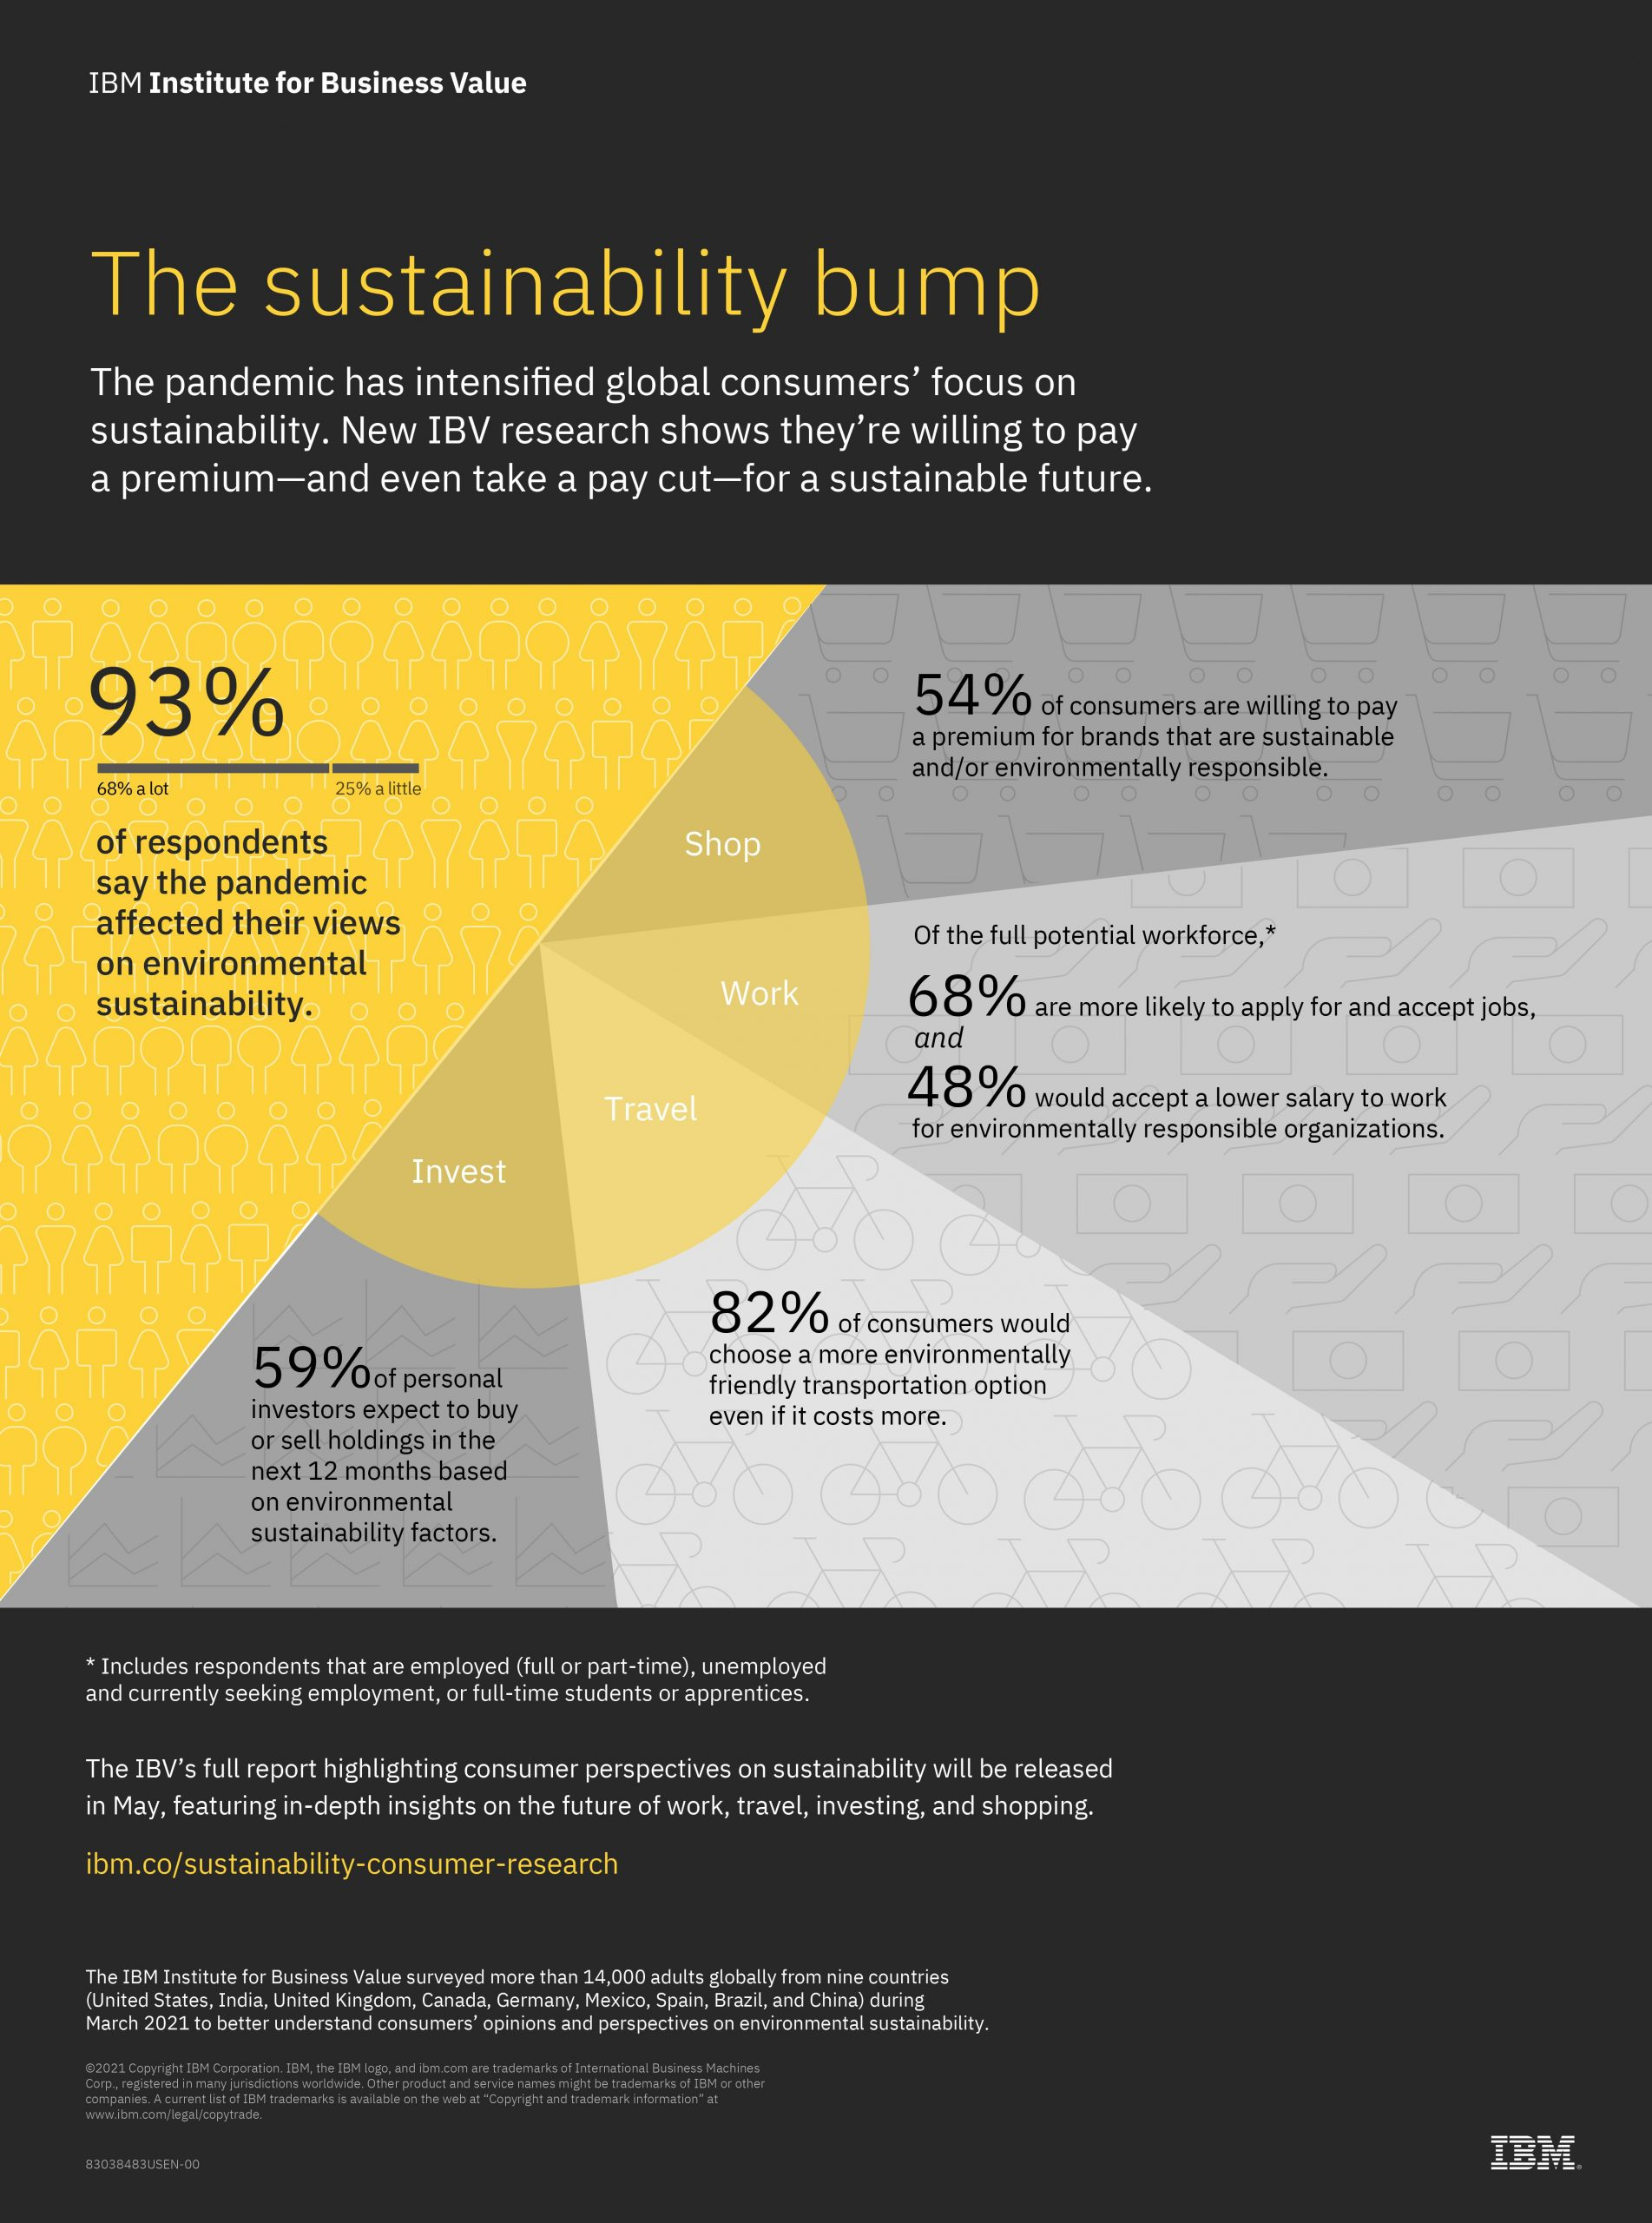 IBM Study: COVID-19 Improved 9 in 10 Surveyed Consumers' Views on Sustainability